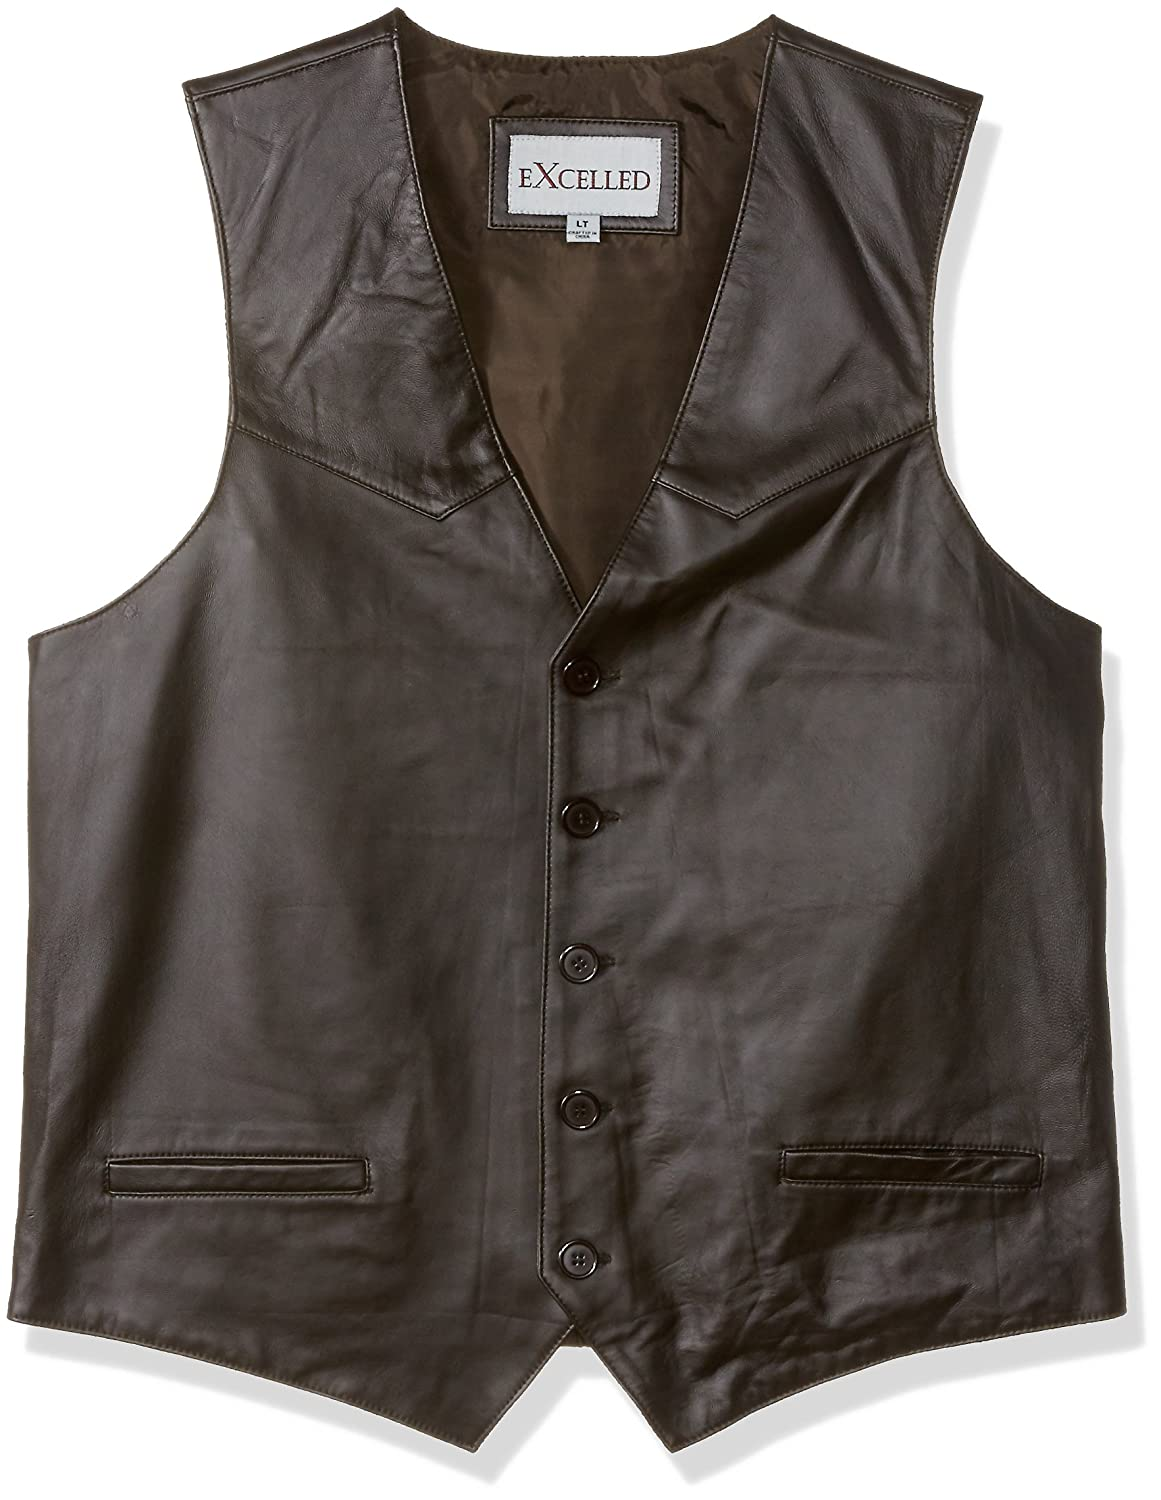 Excelled Men's Tall Size Premium Soft Lambskin Leather Vest Excelled Apparel 3070TM